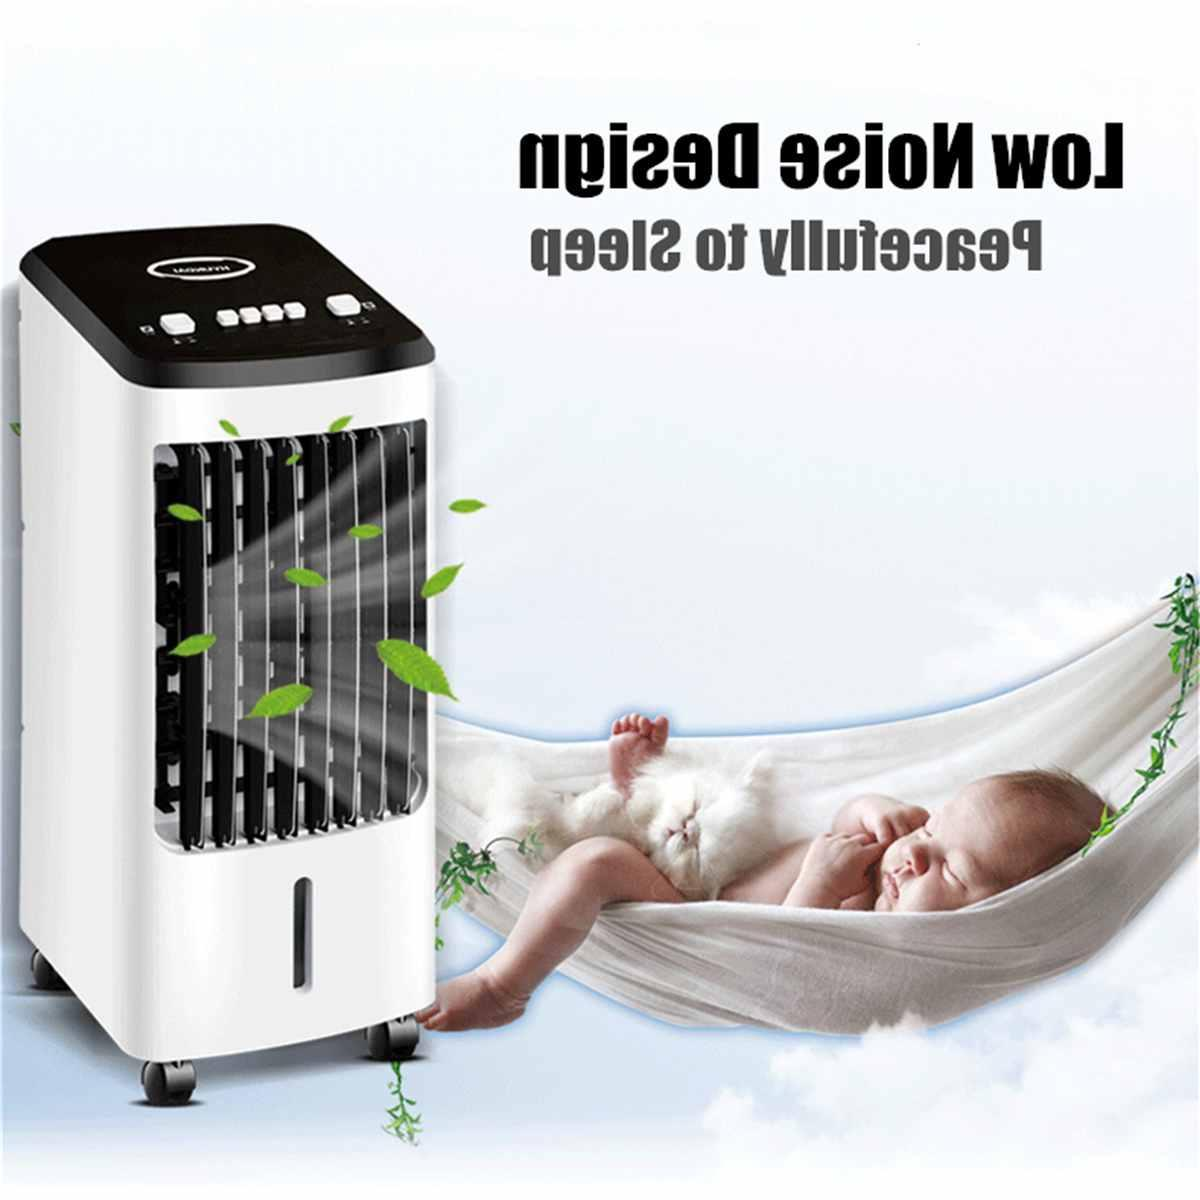 70W Portable <font><b>Air</b></font> Conditioning Cooling 220V Timed